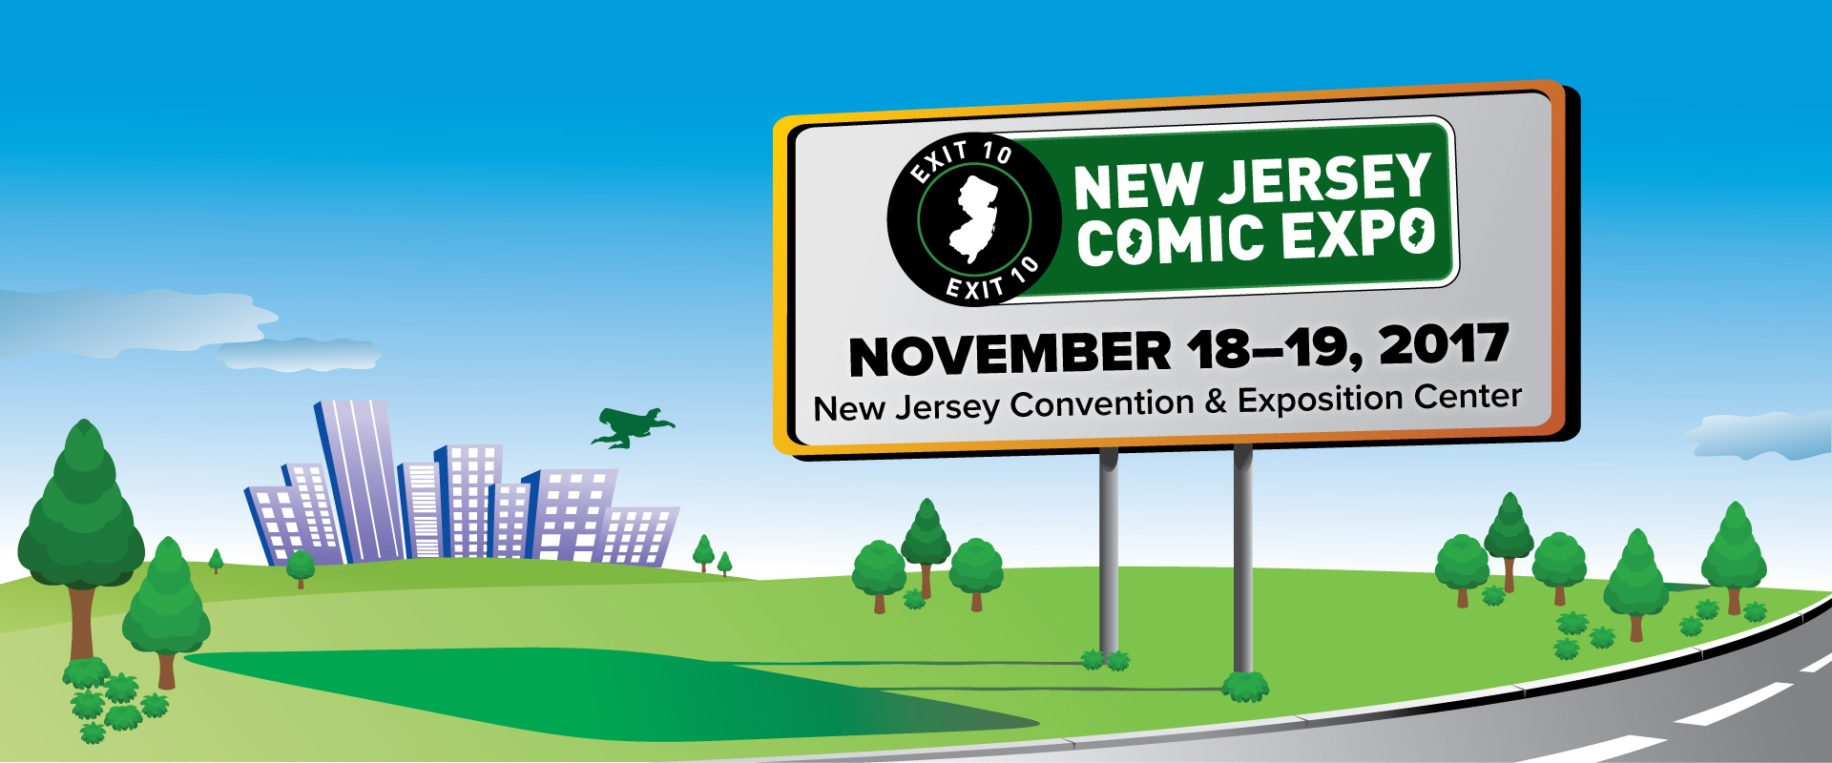 Giveaway: 3 Free Pairs of Tickets for the 3rd Annual New Jersey Comics Expo